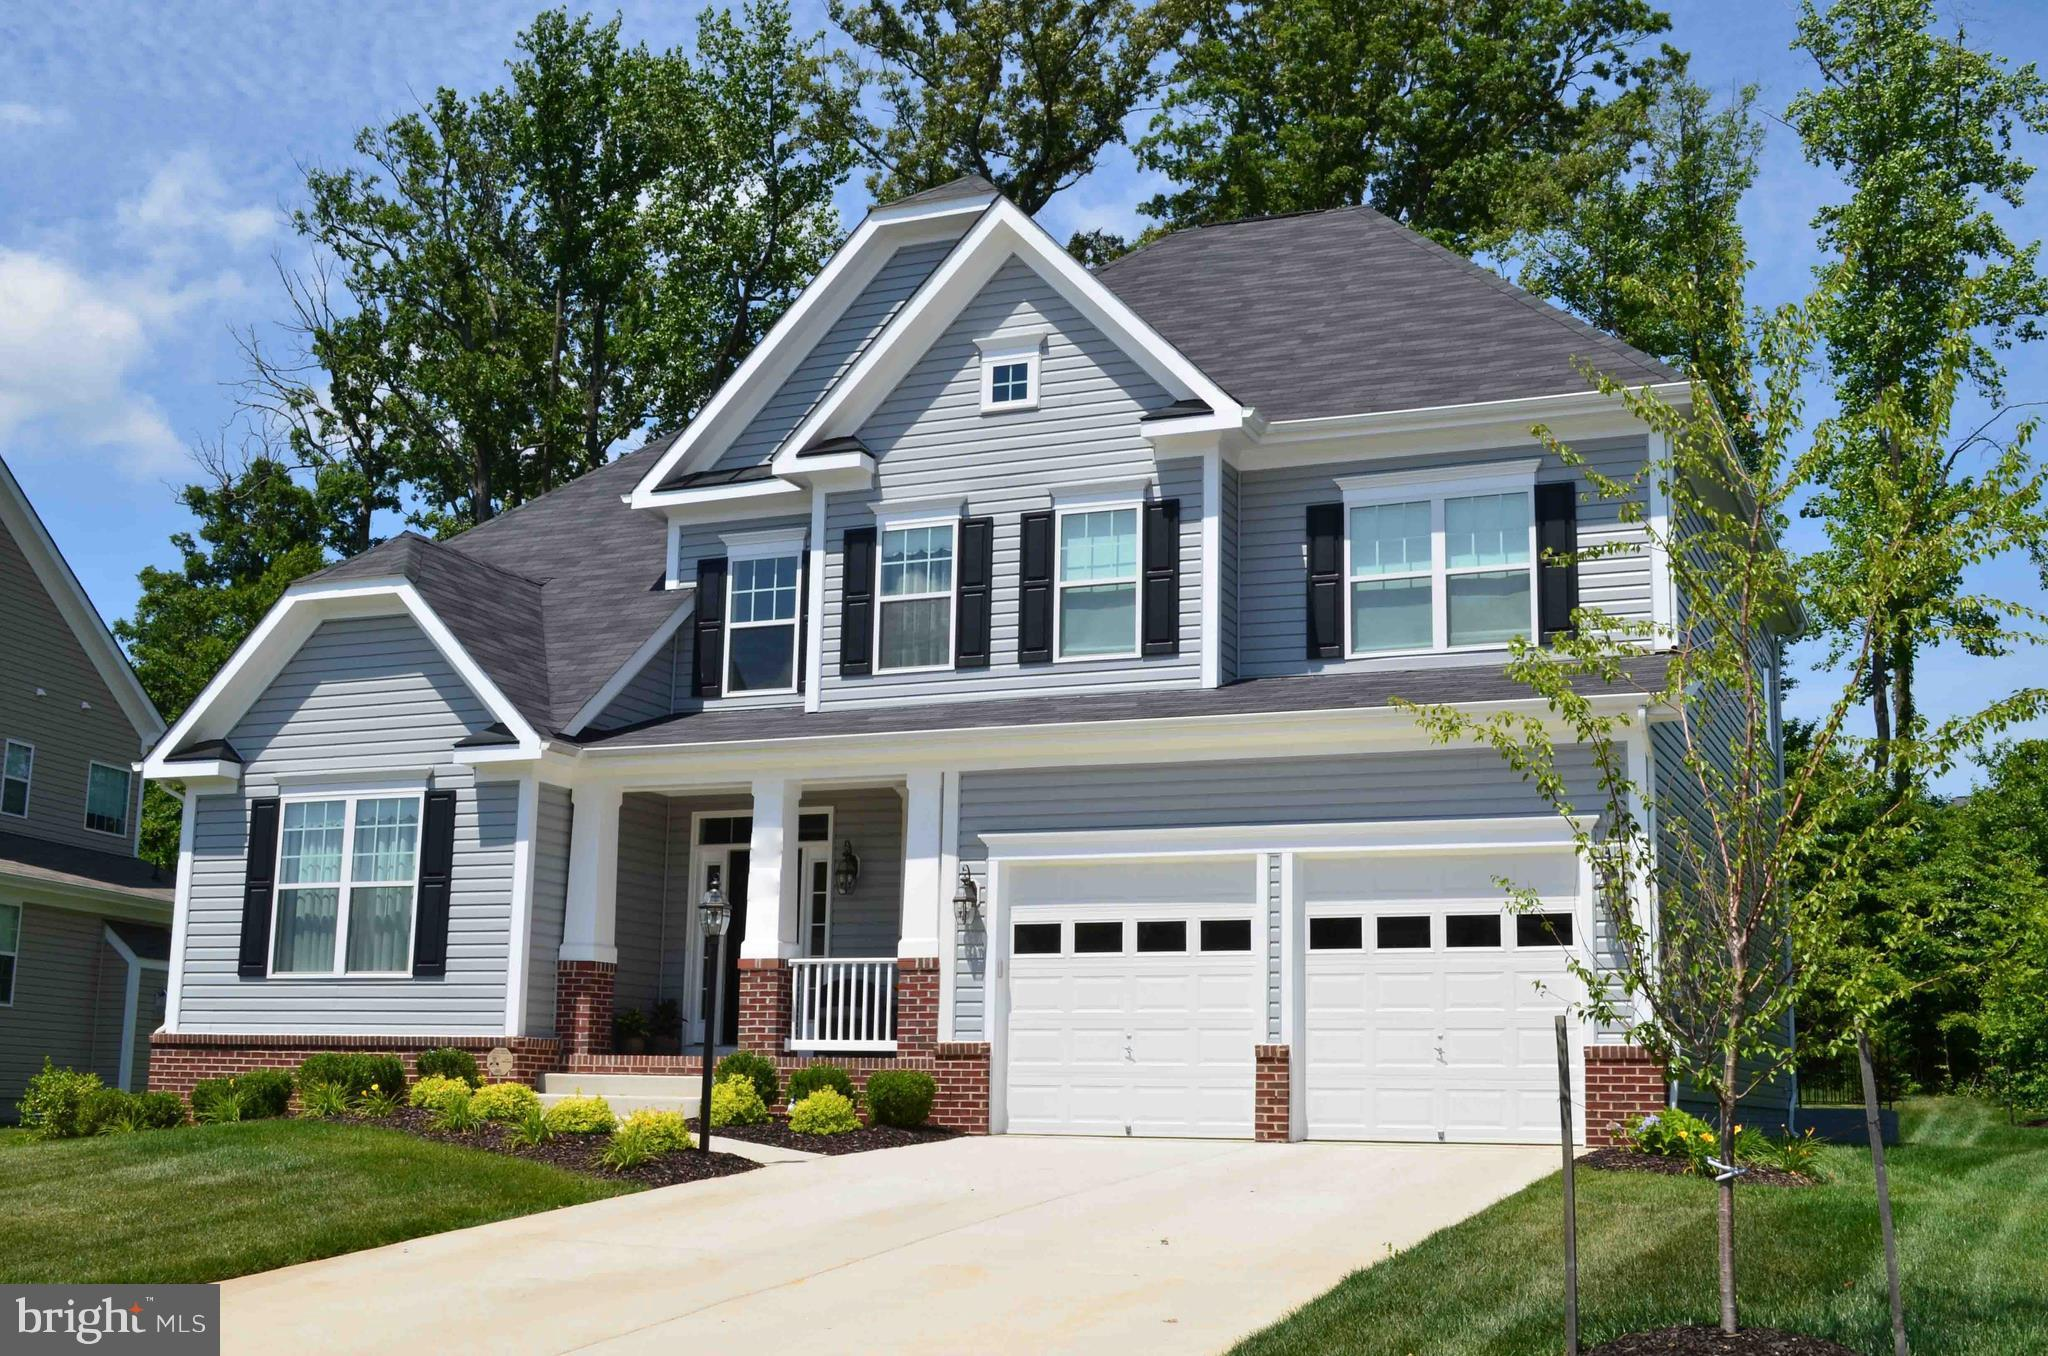 """To-Be-Built!!  Our popular Bedford Model. Kitchens with 42"""" Cabinets Granite & SS. Gas Fireplace. HW Floors in Foyer, Main Stairs, & Kitchen. 4 Piece Crown Molding & Chair Rail. Ceramic tile in all Baths. Concrete Driveway, Sodded Yard, Landscaping, Cast Iron Mailbox & So much more in options!"""